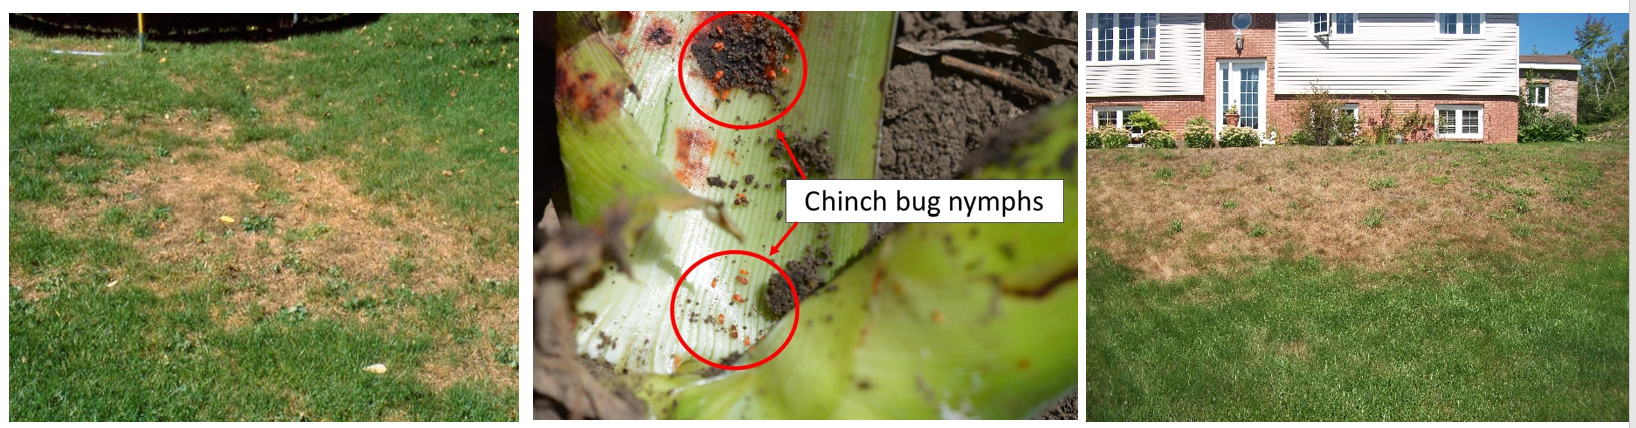 Chinch bugs are most active in spring and summer.